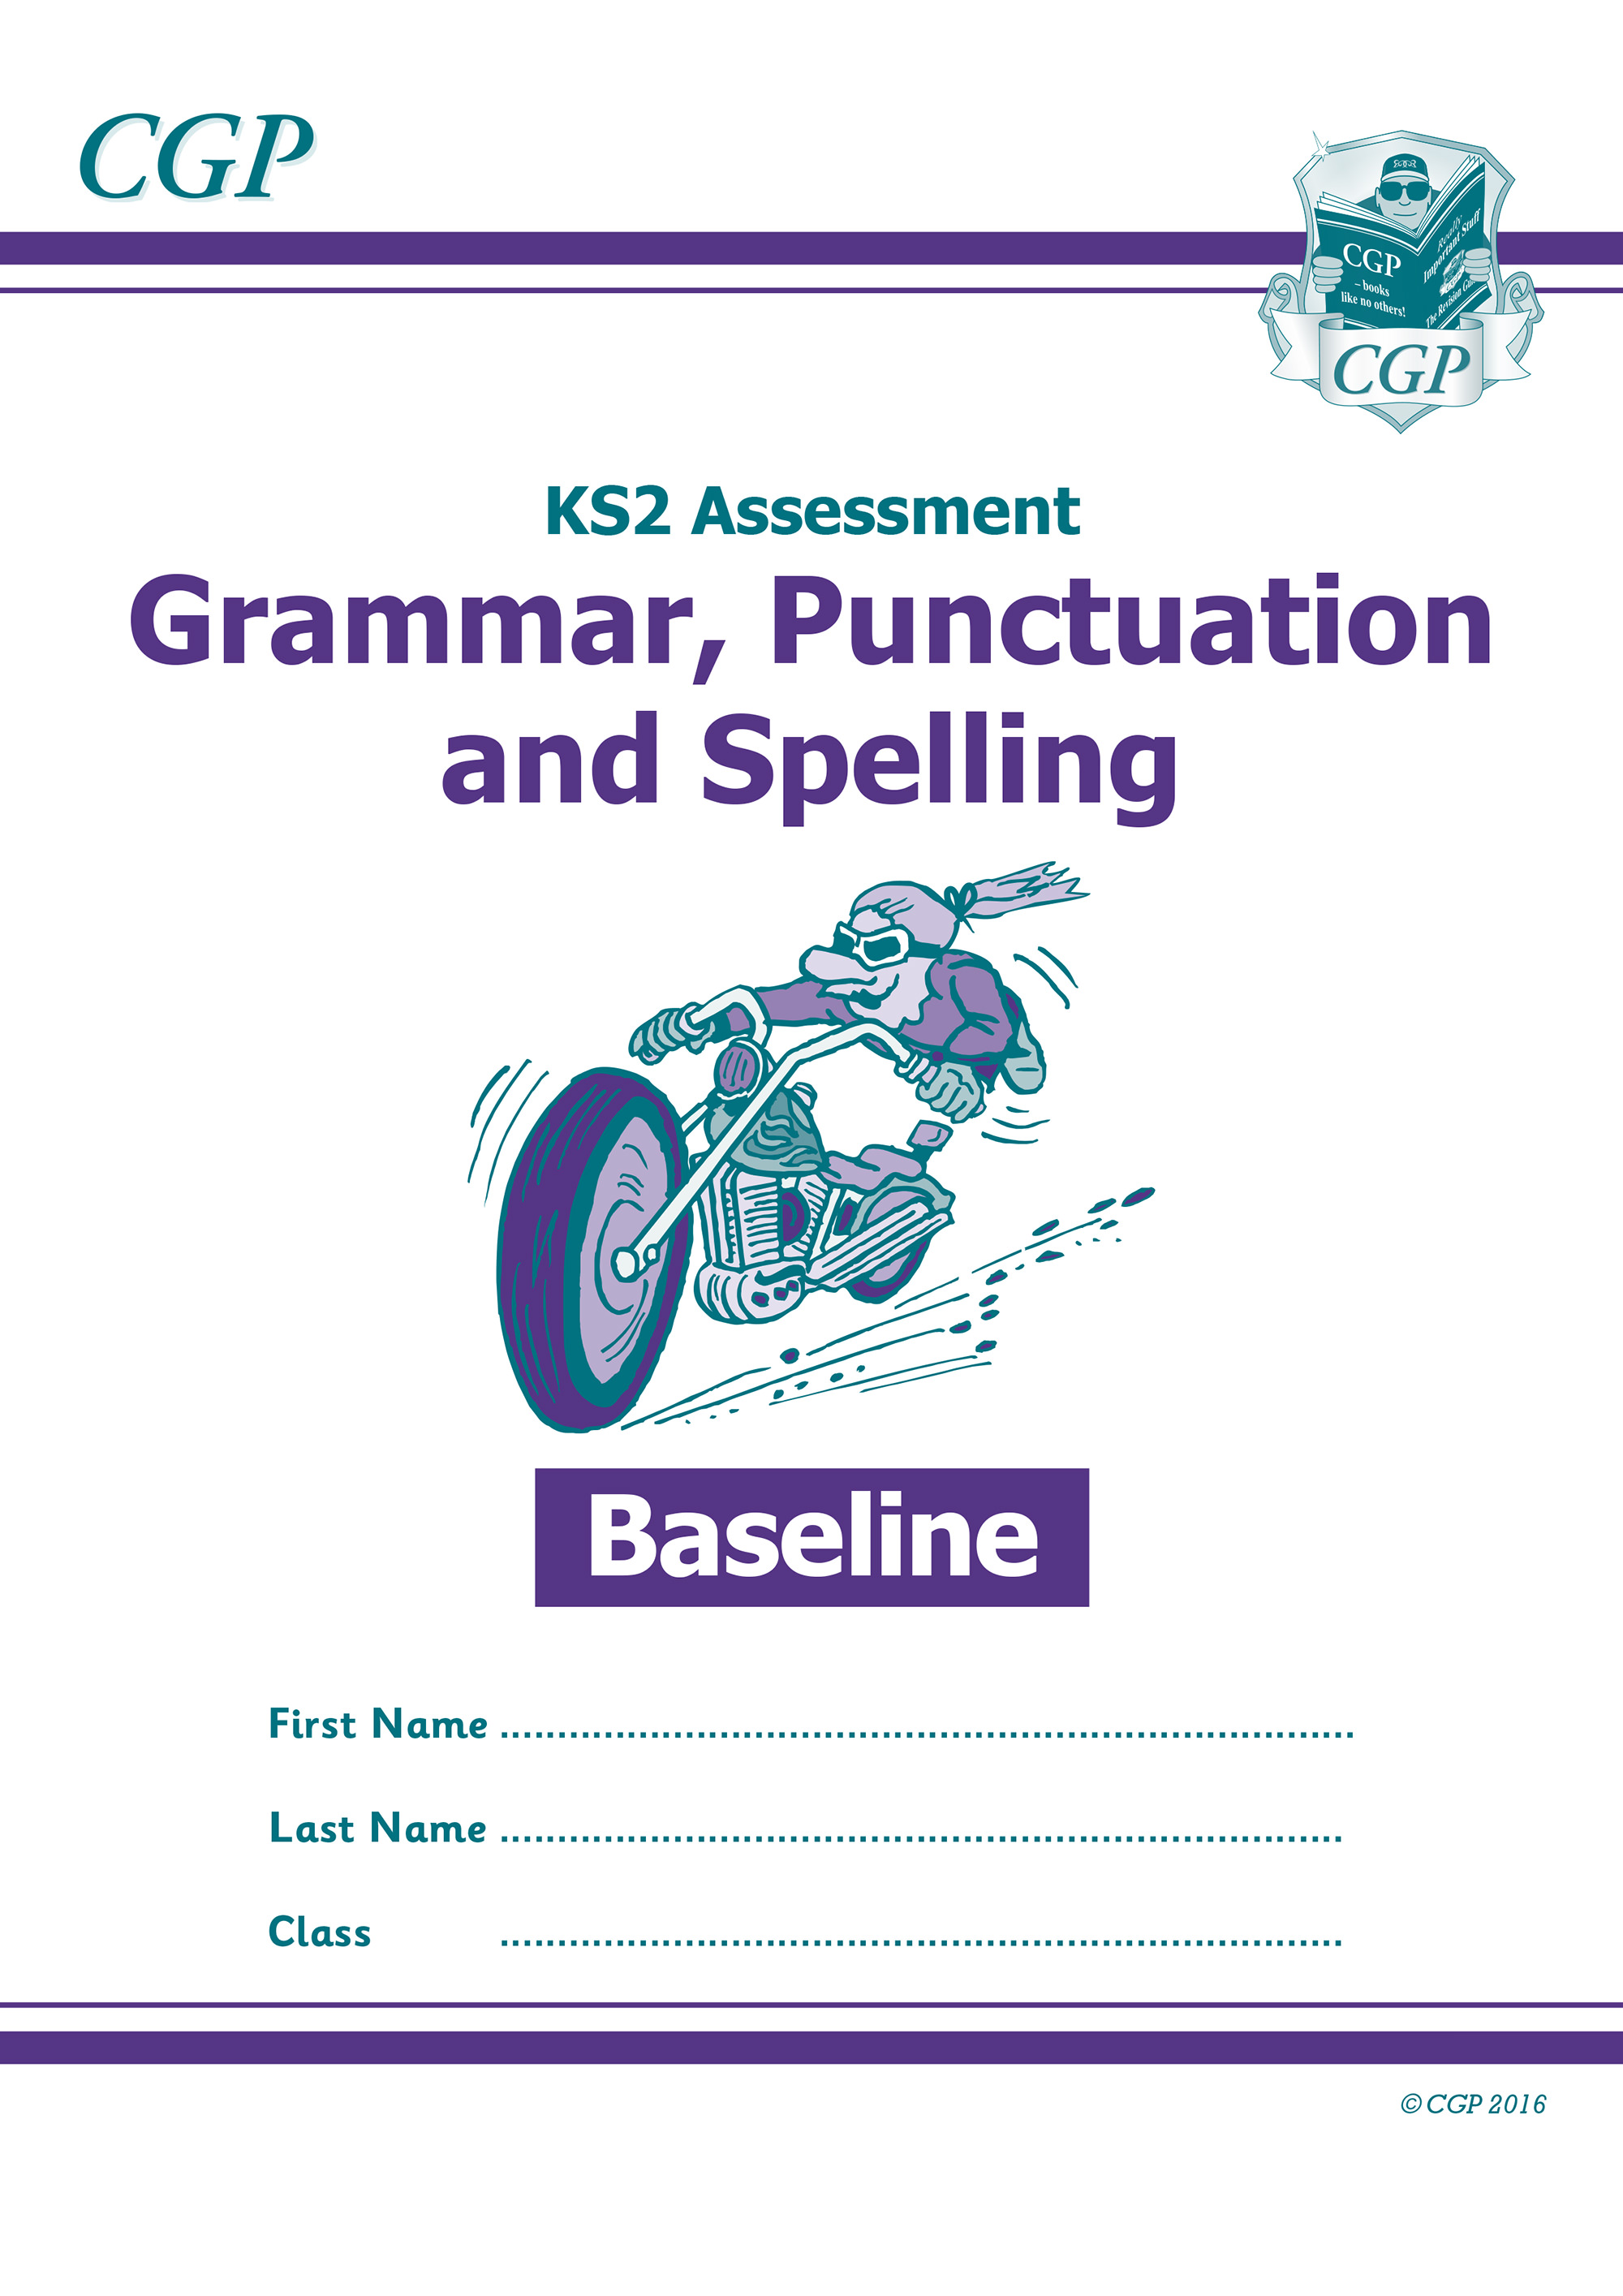 EBGP21 - KS2 Assessment: Spelling, Punctuation & Grammar - Baseline Test